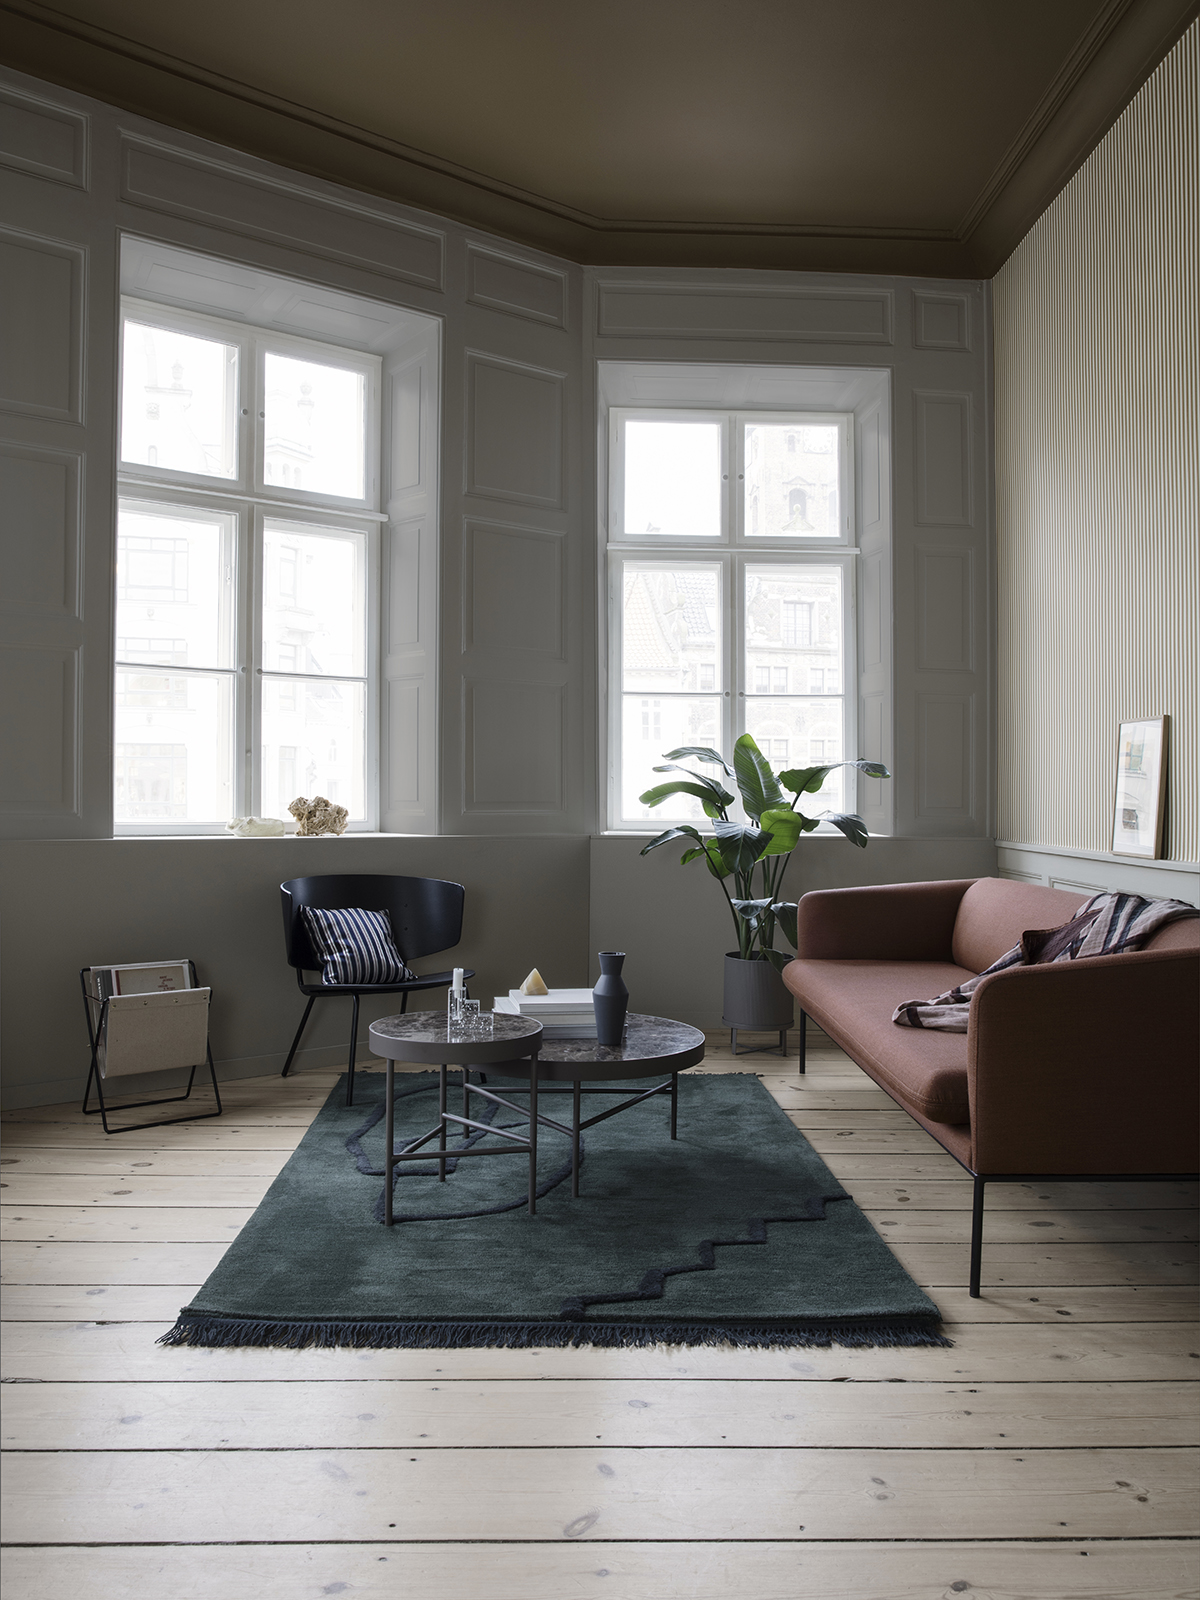 9. - Desert Tufted RugThe organic motif, fringe details and rich colour options make this Desert Tufted Rug from Ferm Living a great option if you are looking for a simple contemporary rug. It makes a strong statement without overpowering the other pieces in the room.Connox - £441